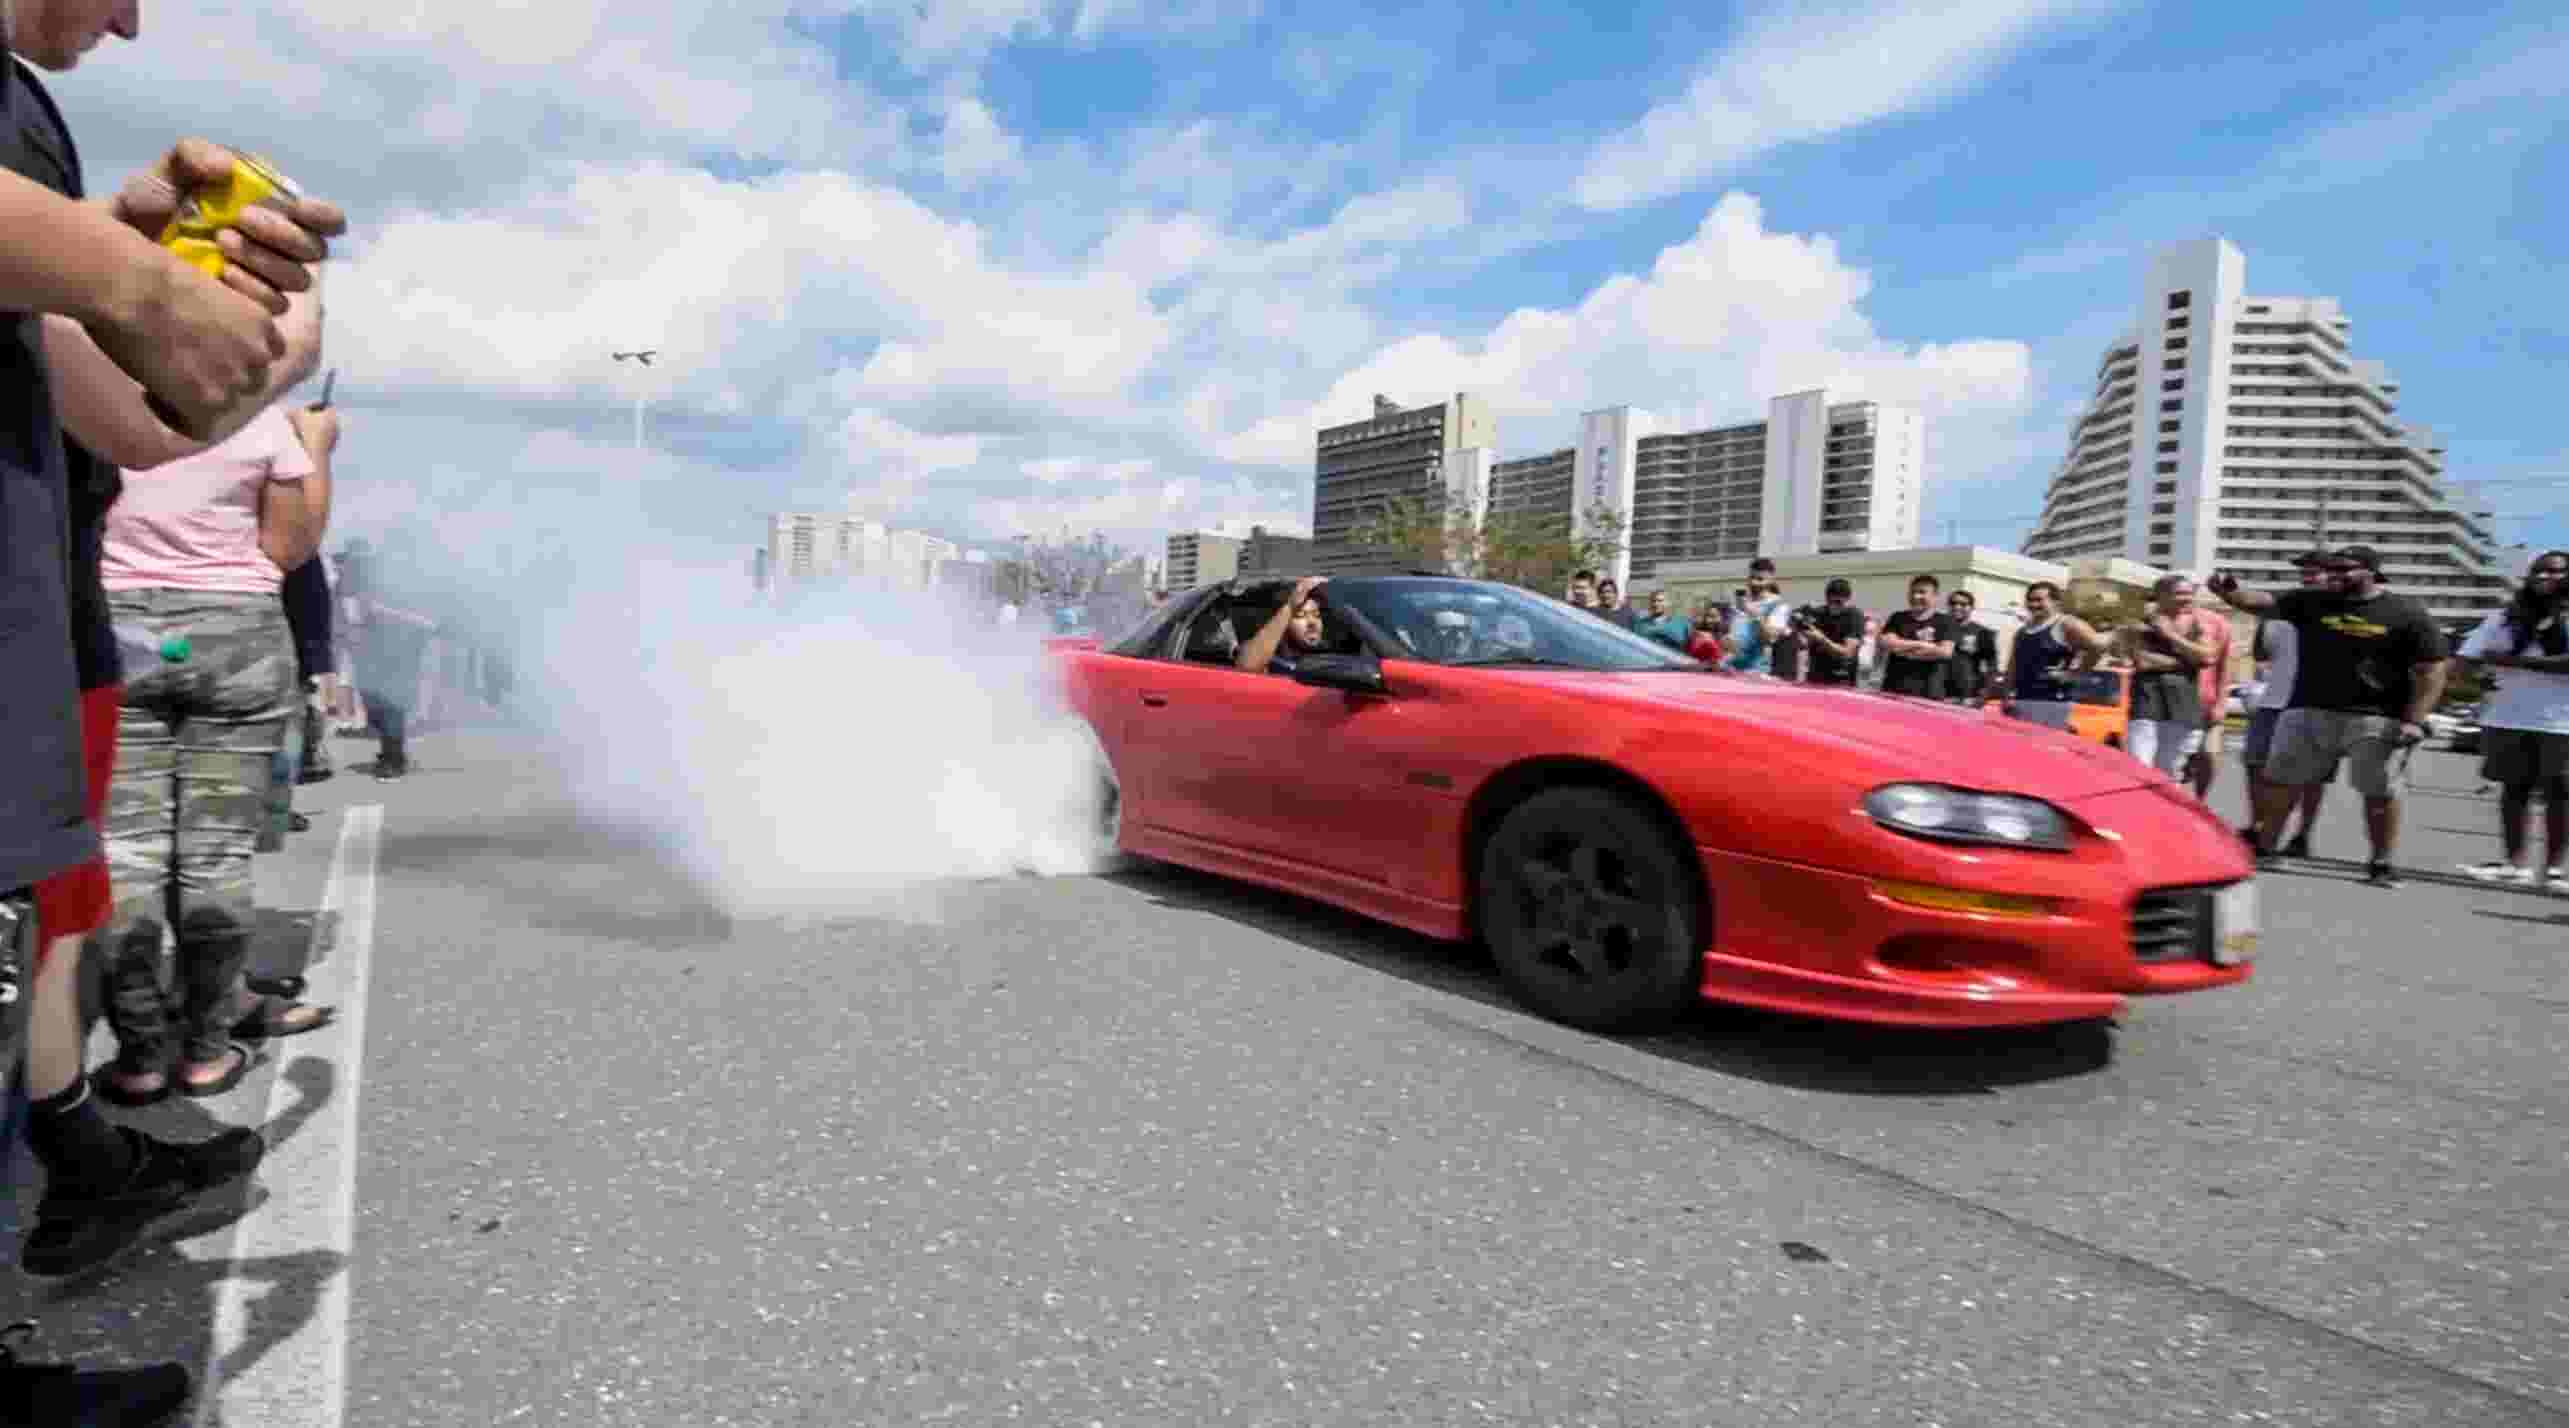 H2ois Spirit Alive In Ocean City Despite Events Official Move Mustang Car S Ford Videos 2018